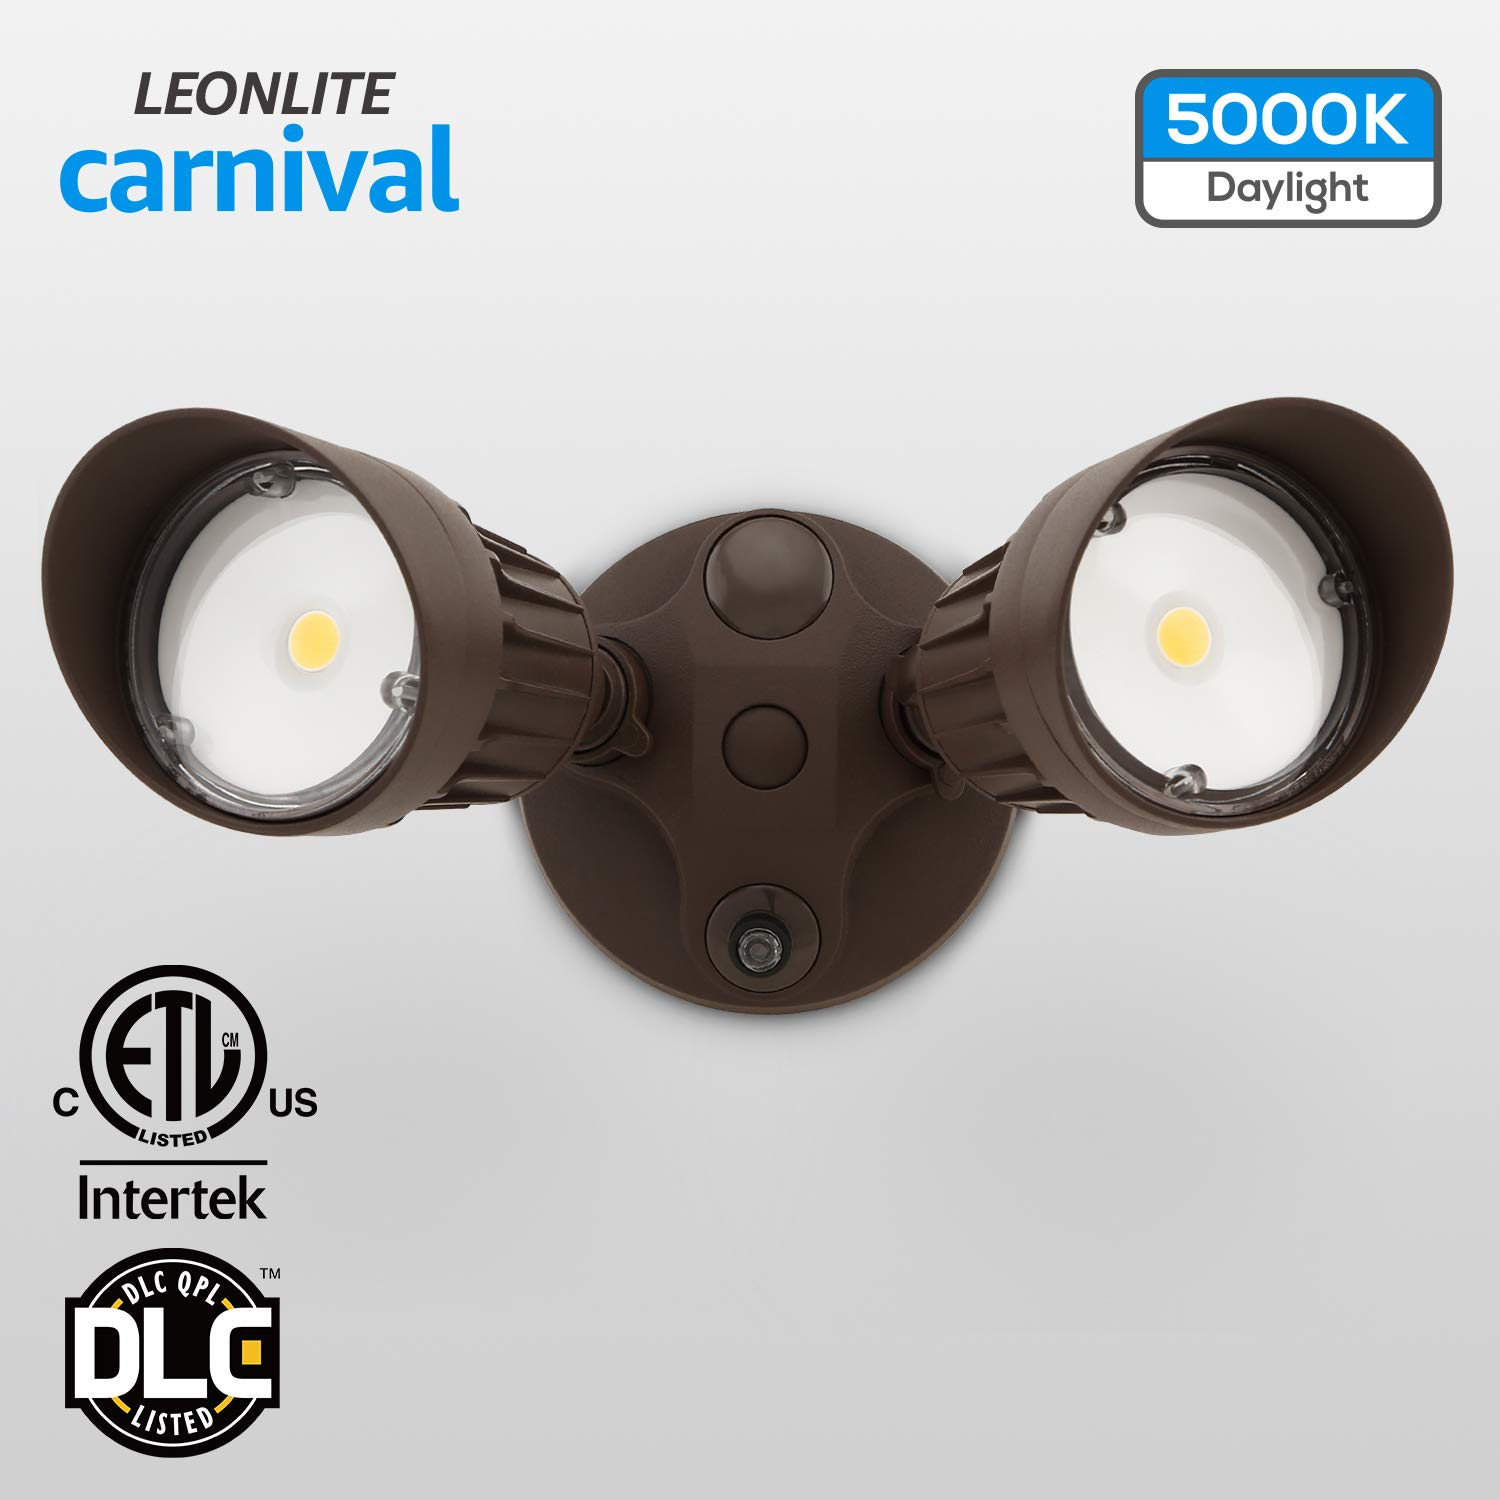 20w Dual Head Dusk To Dawn Led Outdoor Security Light Photocell Dlc Listed Exterior Lamp 120w Halogen Equiv 5000k Daylight 1600lm Floodlight